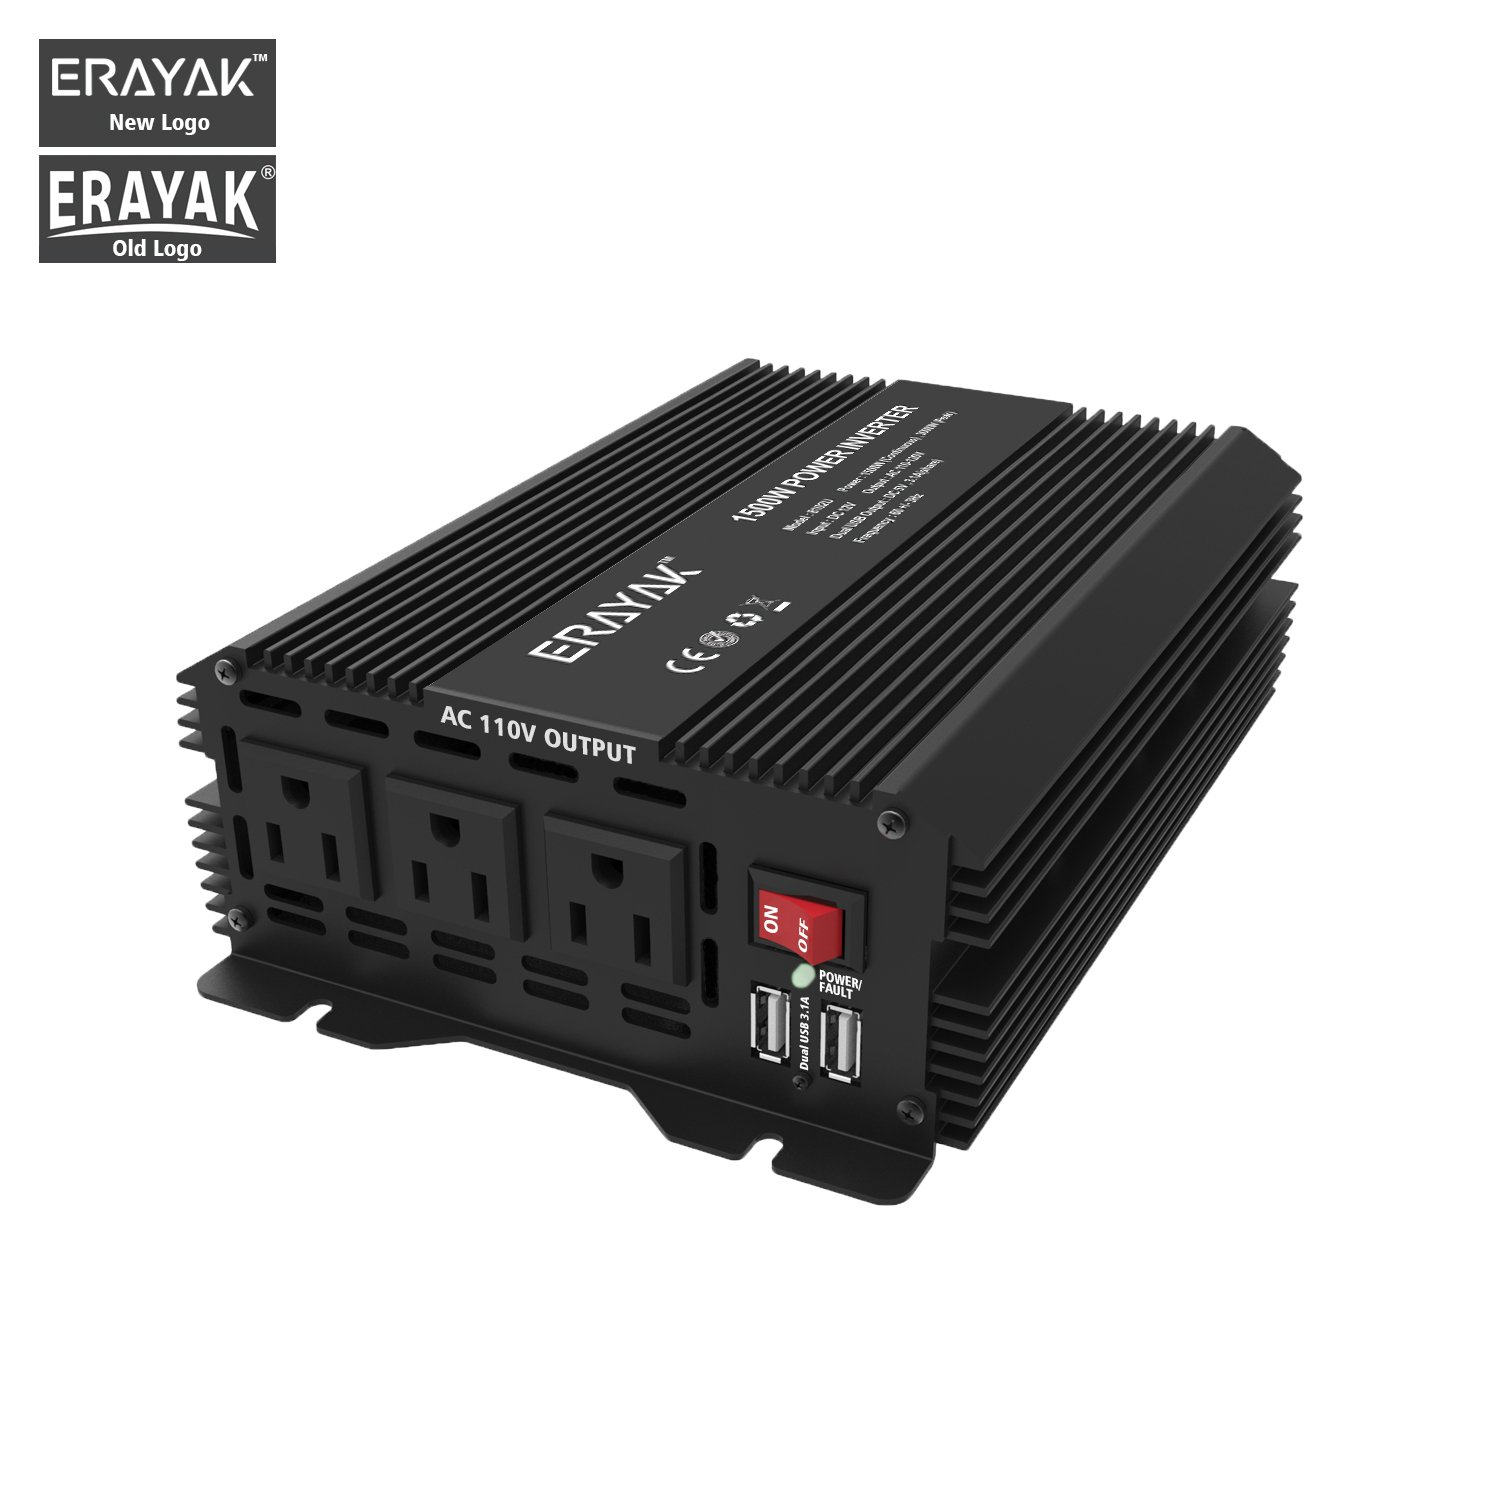 ERAYAK 1500W Power Inverter DC 12V to 110V 3 AC Outlets with 3.1A Dual USB Ports Solar Power Converter for Home/Office/Car/Travel